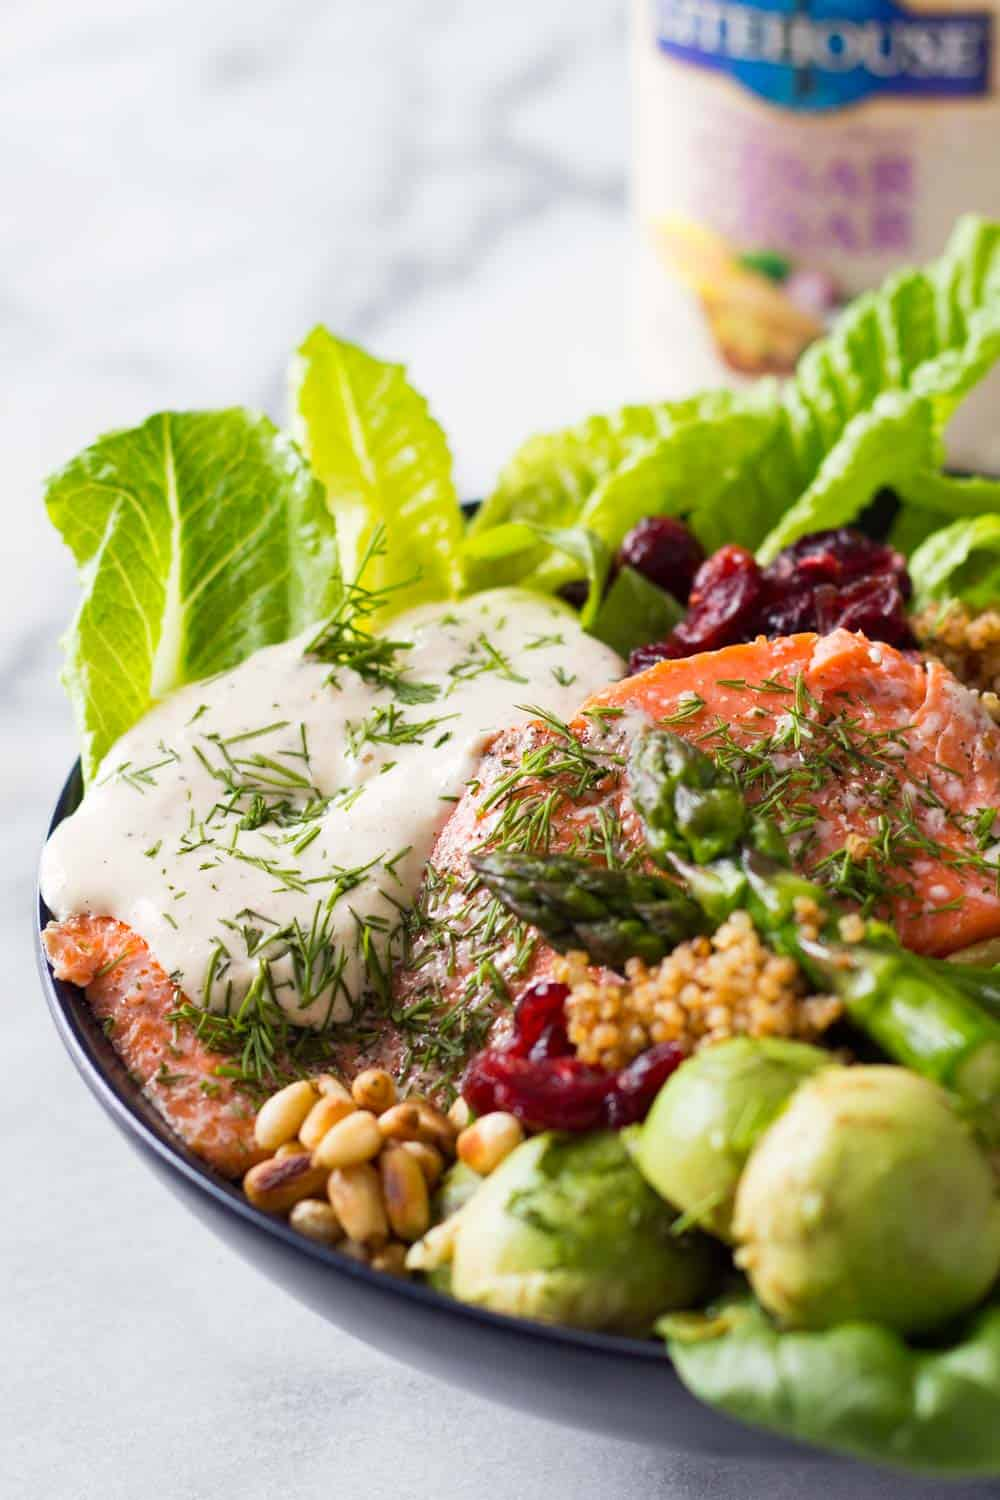 Baked Sockeye Salmon topped with creamy caesar dressing and served with lettuce leaves, dried cranberries, pine nuts, asparagus, avocado balls and quinoa.